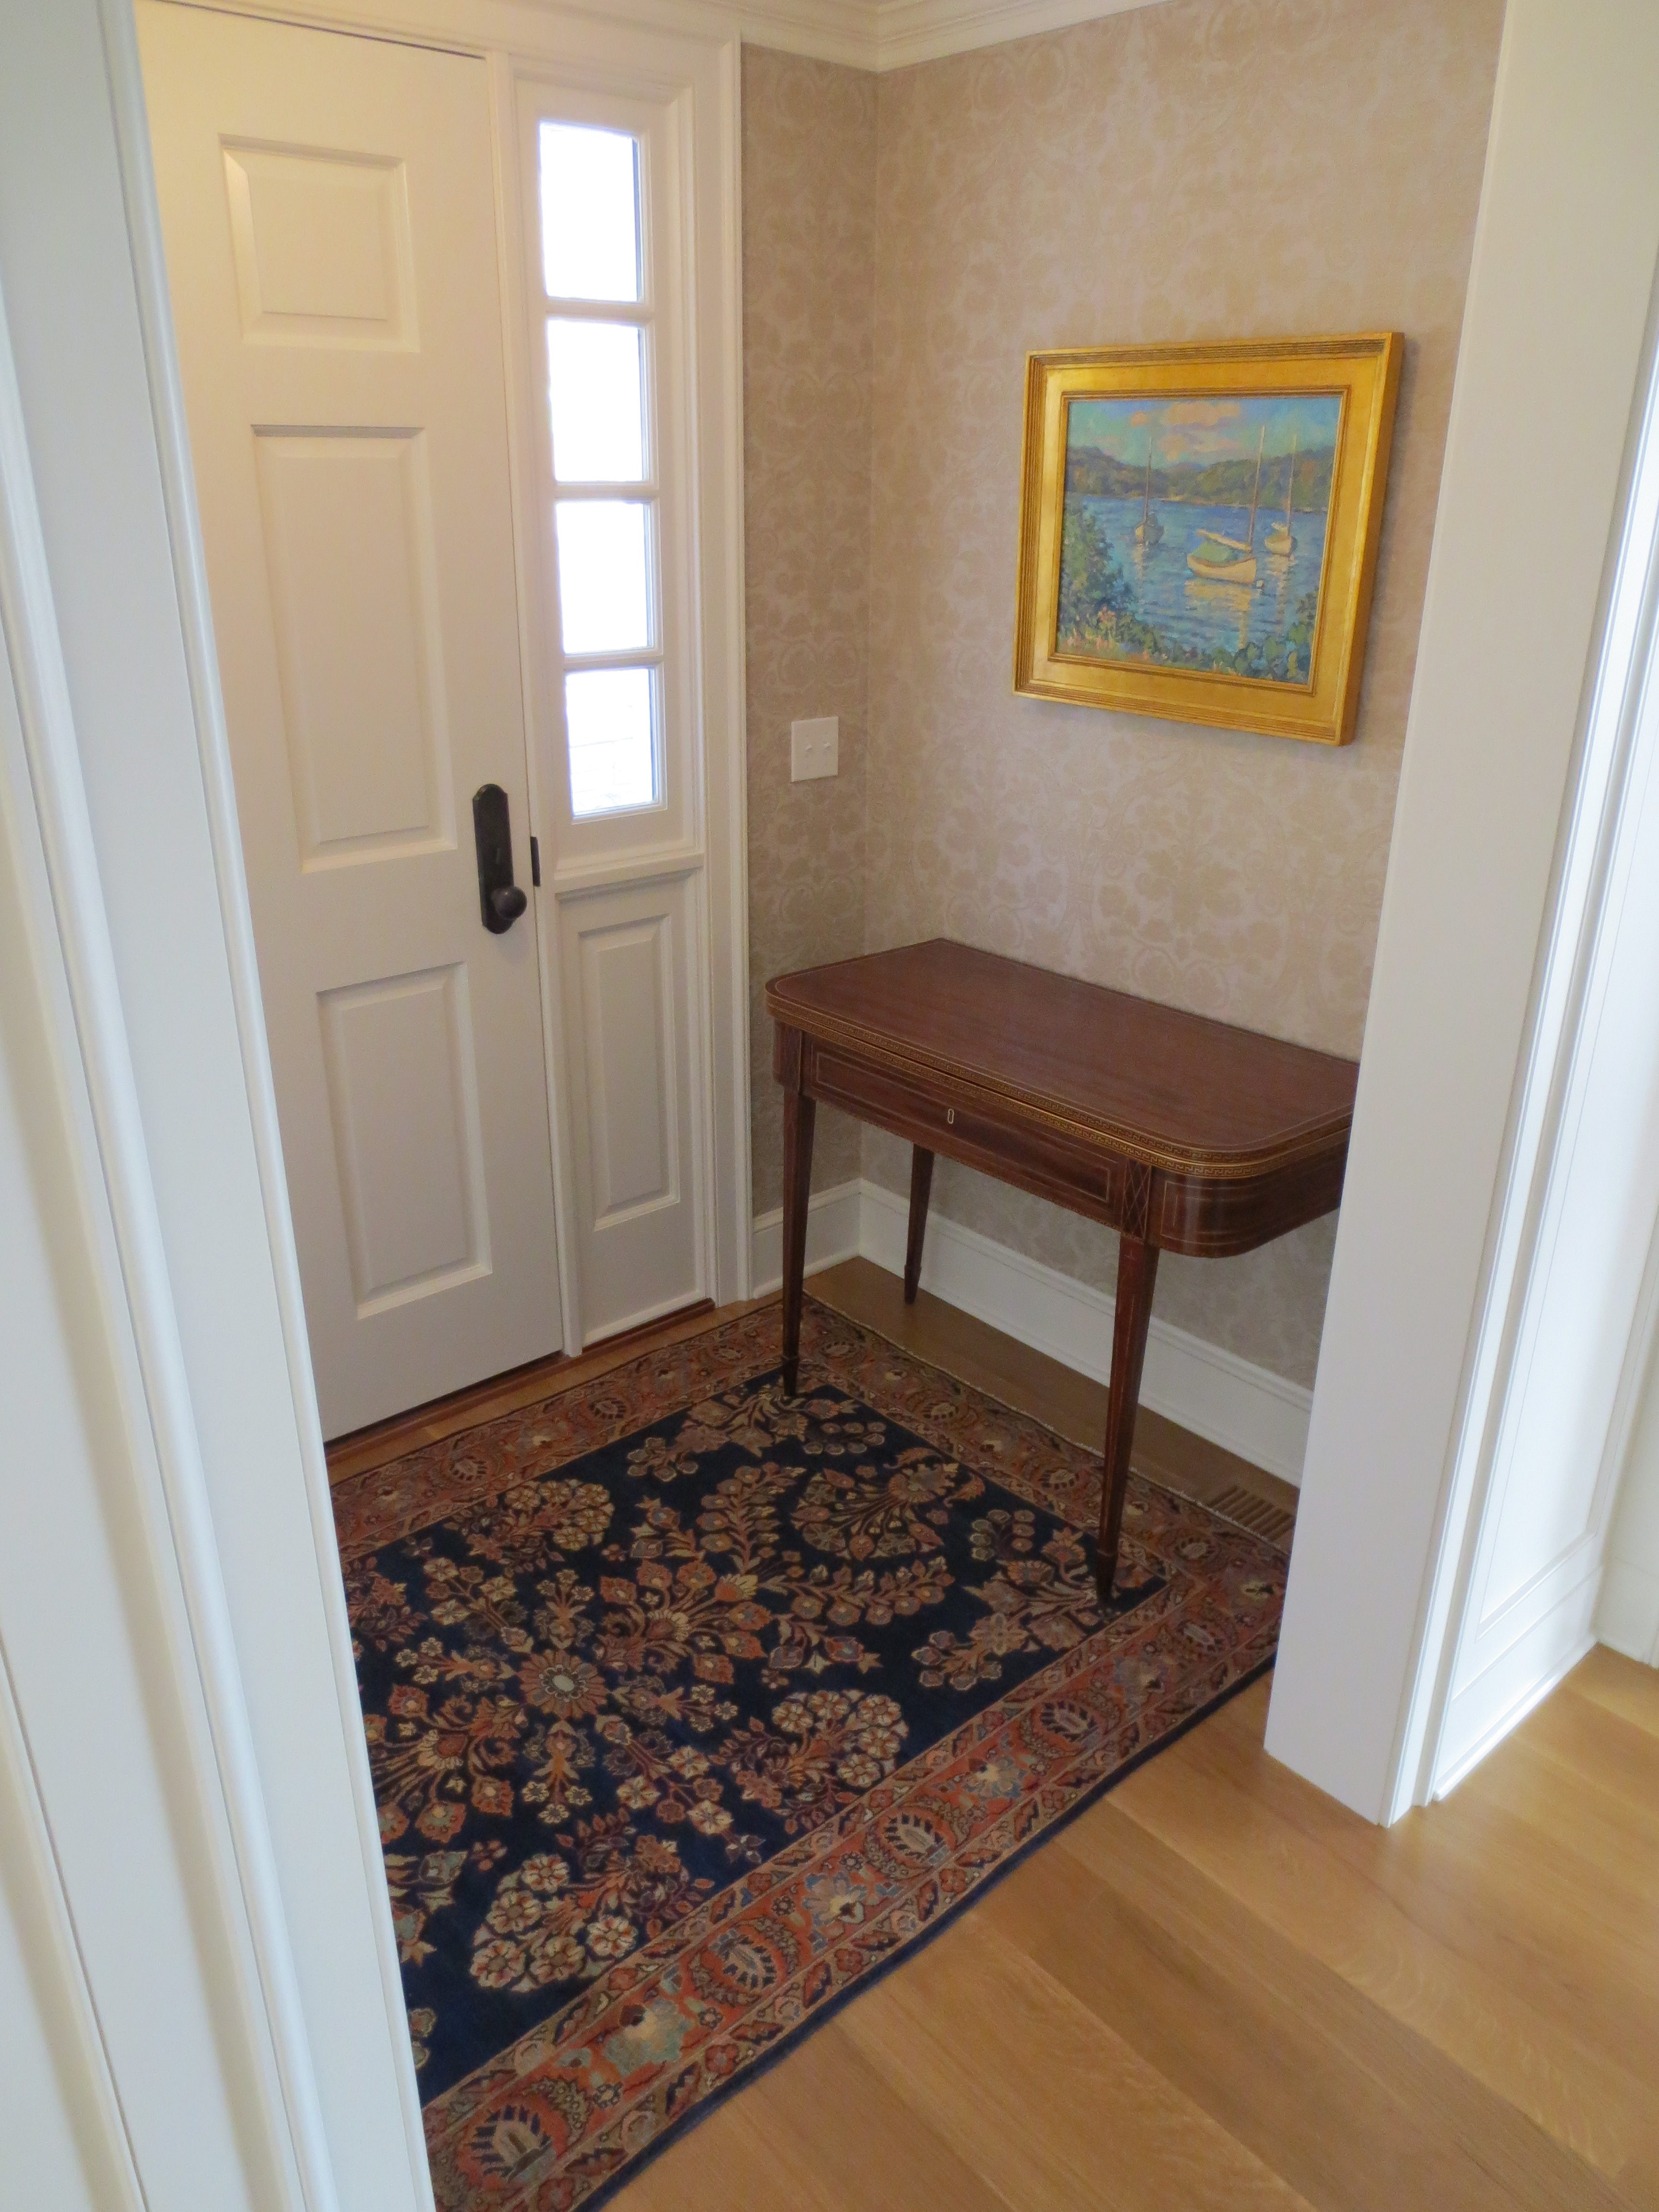 Little Rug Makes Difference In Entryway